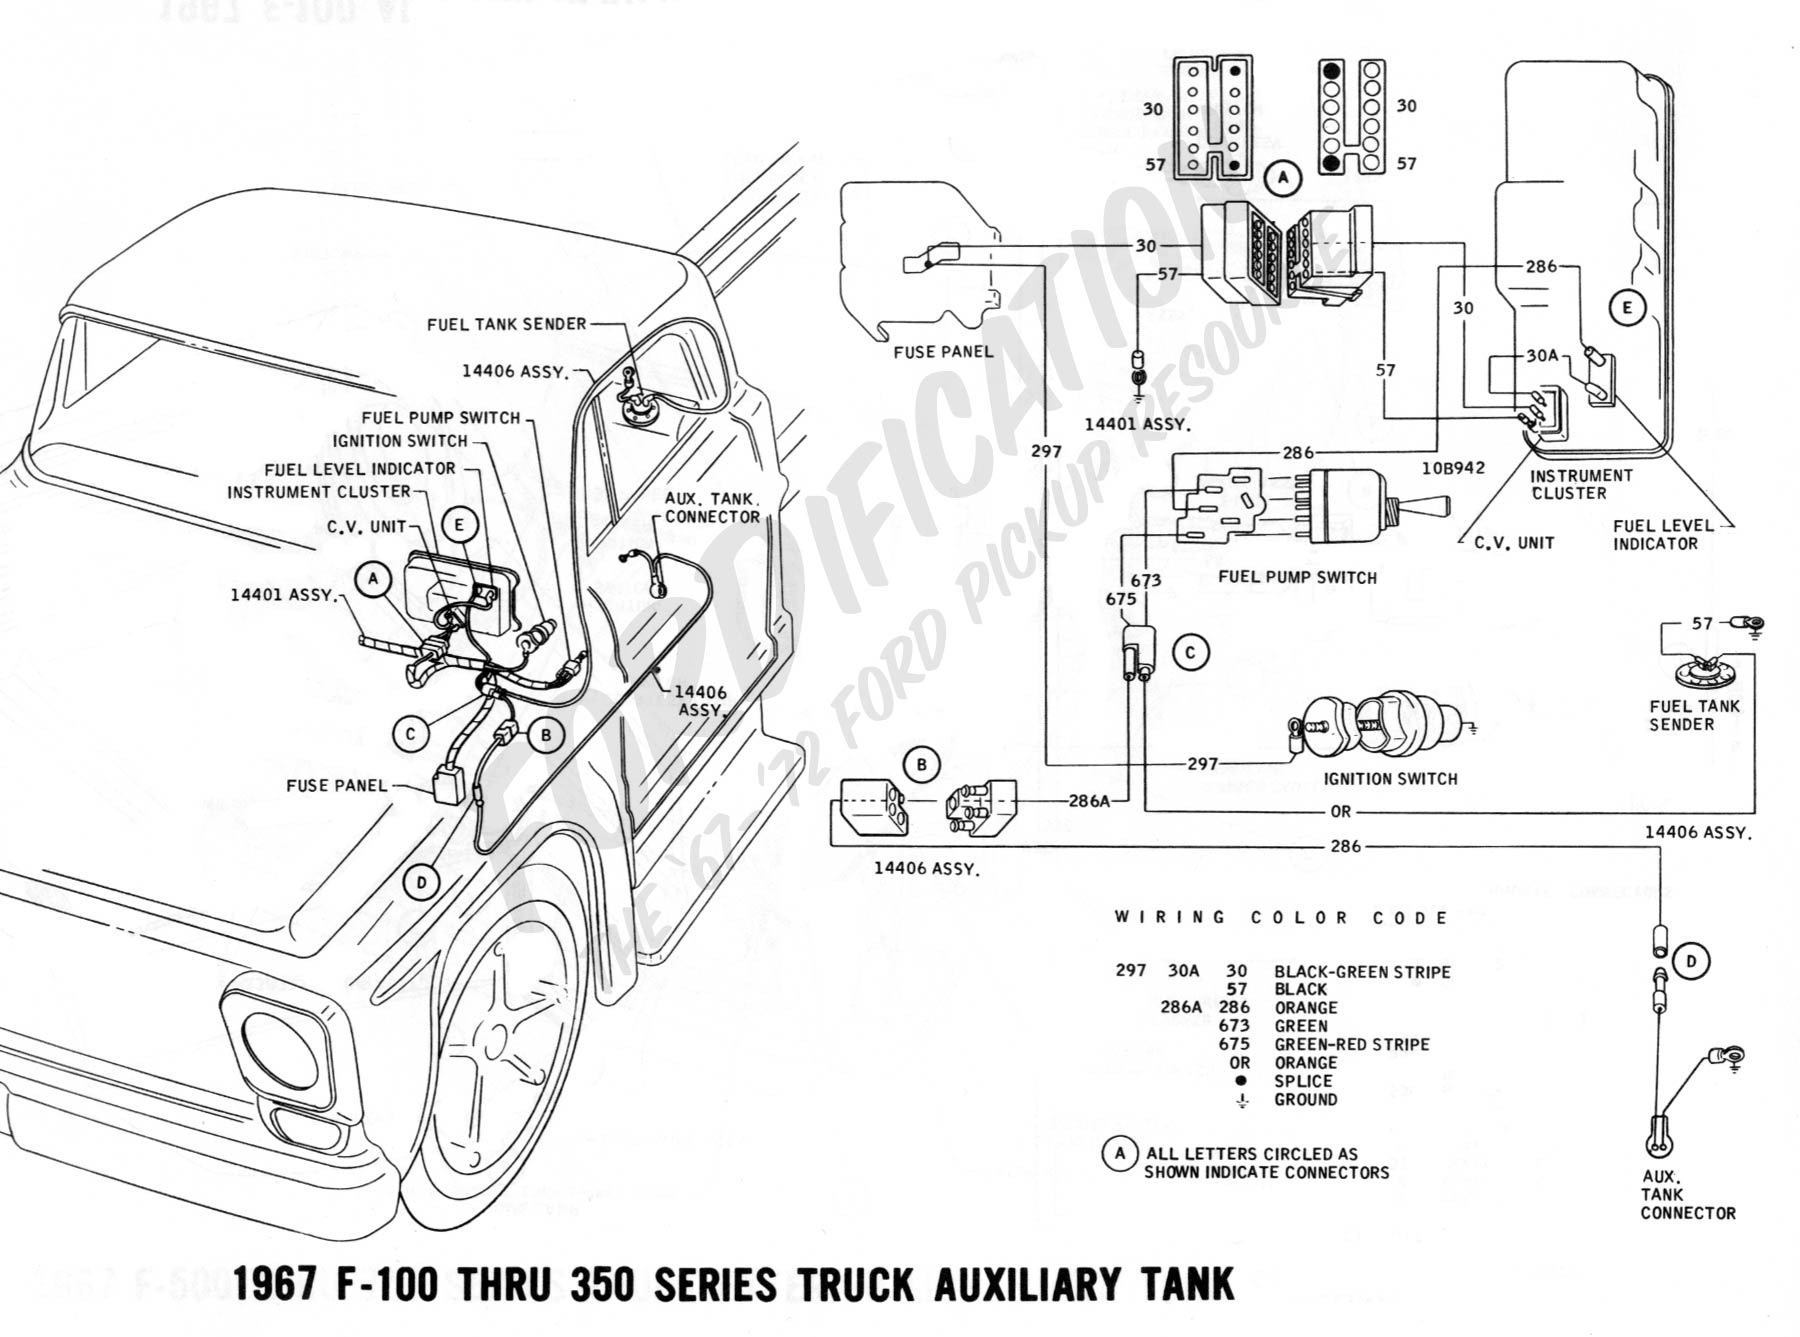 1986 f150 fuel gauge wiring diagram